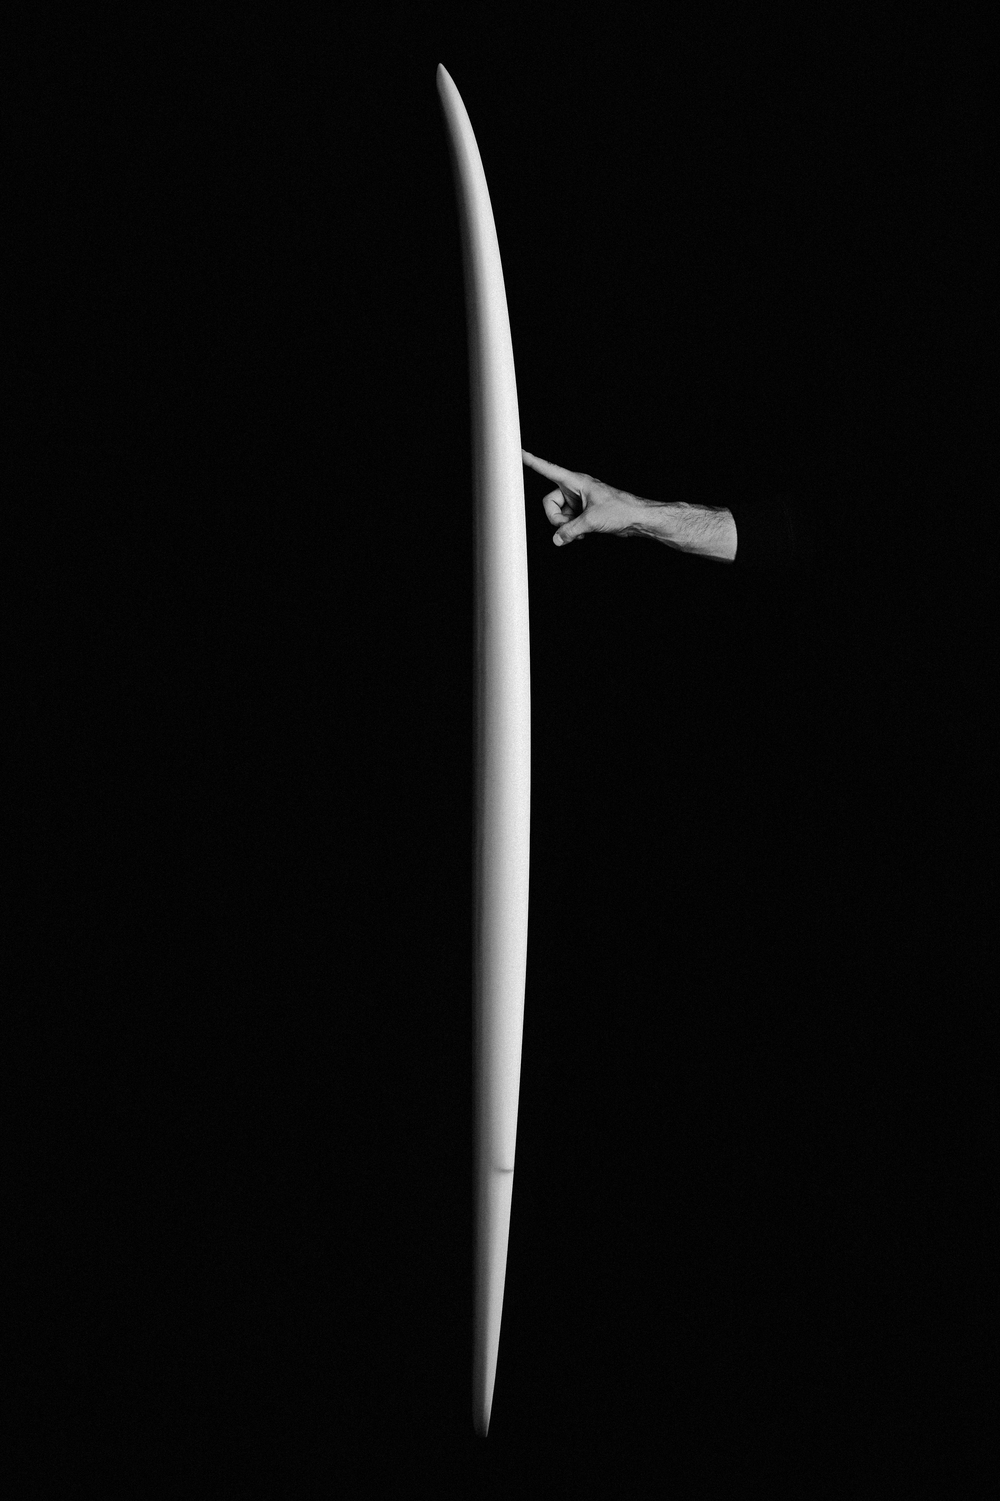 Winged Tiger - Falcone Surfboard - Julien Roubinet 4.jpg